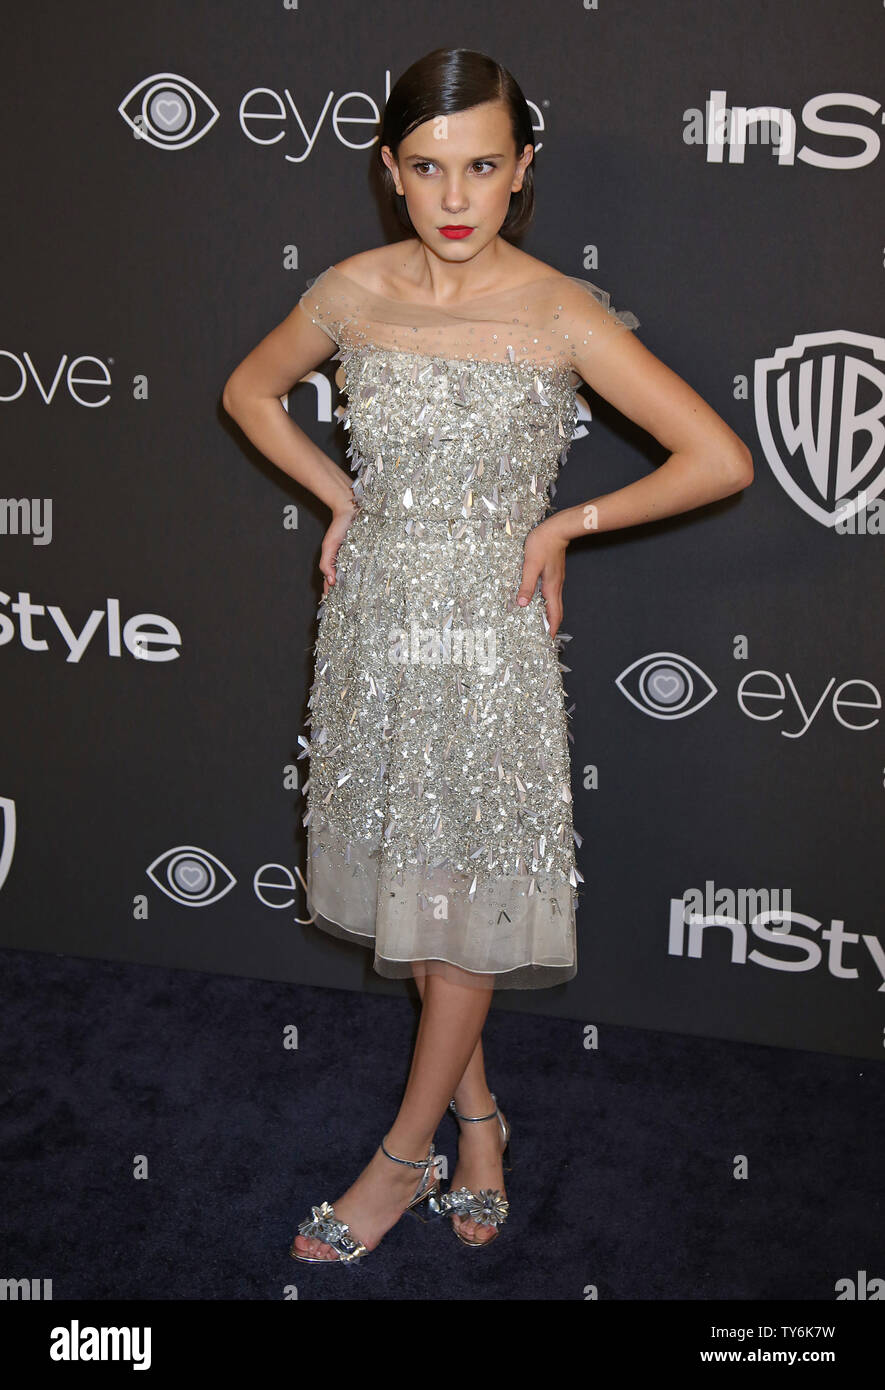 Millie Bobby Brown attends the 18th annual InStyle and Warner Bros. Golden Globe after-party at the Beverly Hilton Hotel in Beverly Hills, California on January 8, 2017.  Photo by David Silpa/UPI - Stock Image